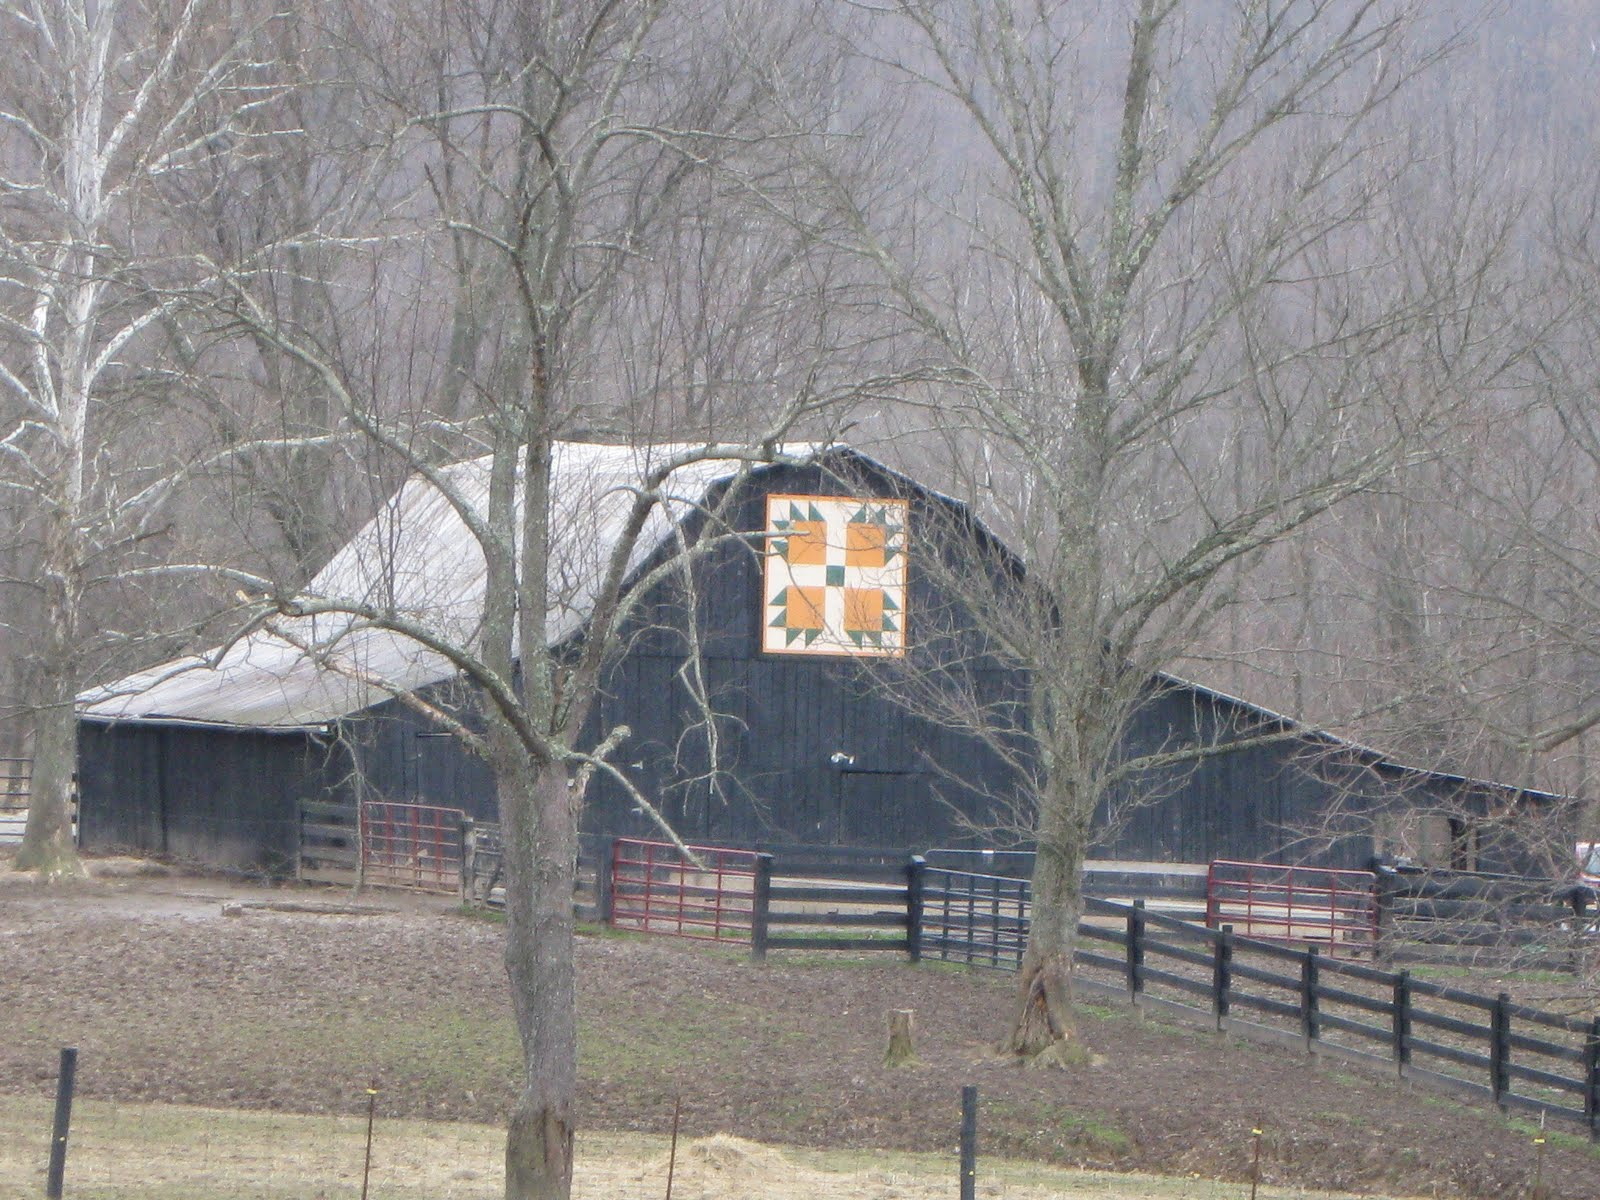 Quilt Patterns On Barns In Ky : FOLKWAYS NOTEBOOK: KENTUCKY BLACK BARN WITH QUILT SQUARE